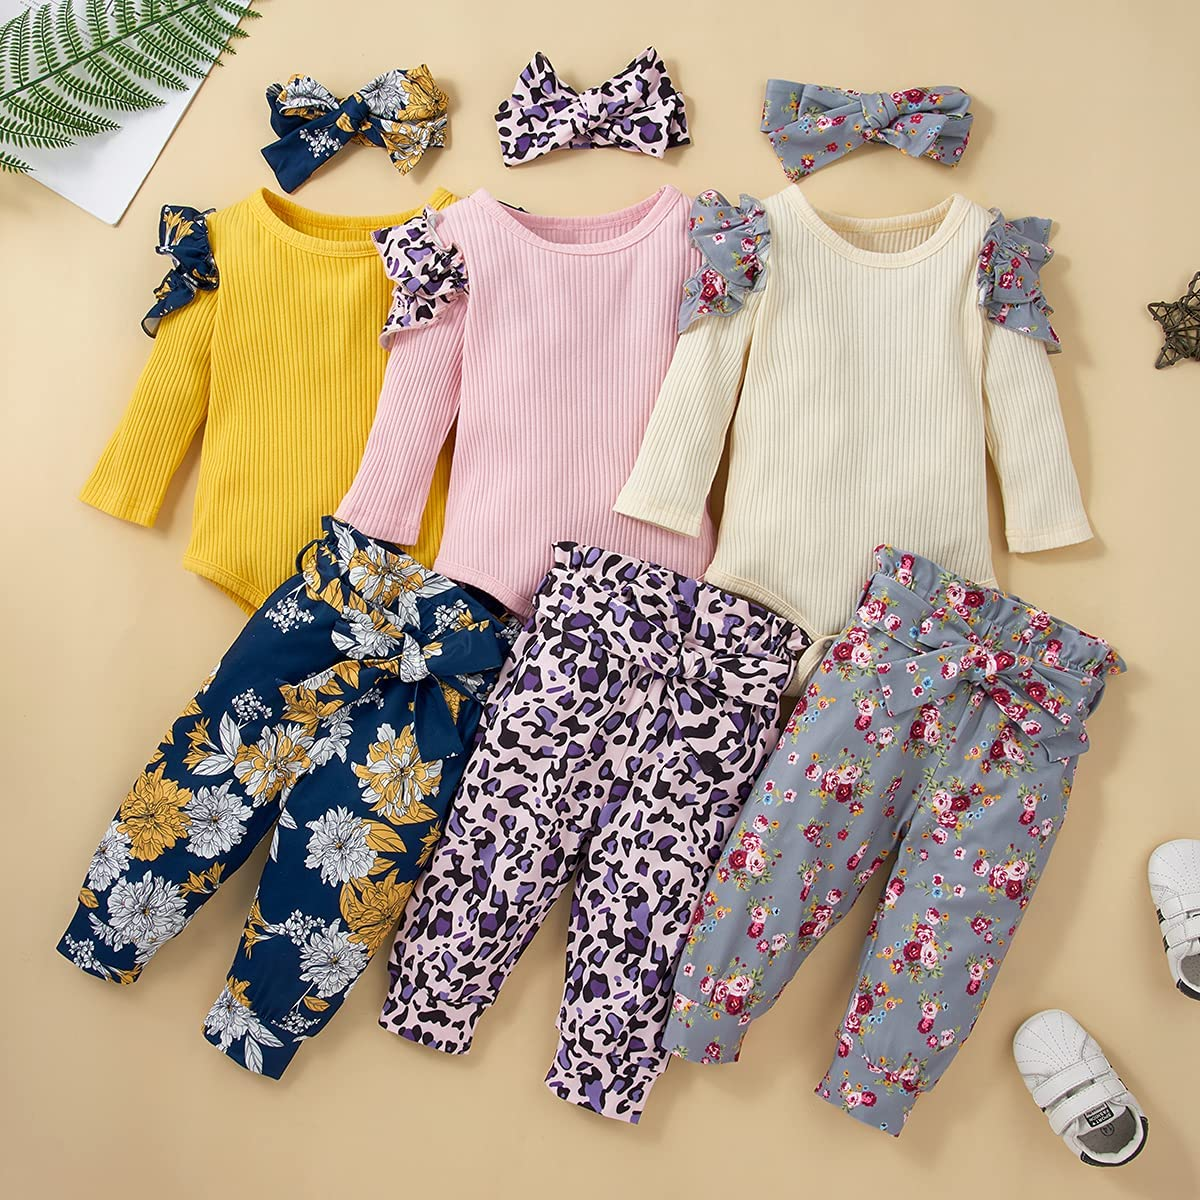 Newborn Baby Girl Clothes Set Ruffle Ribbed Romper Floral Pants Toddler Baby Girl Clothes 3Pcs Outfits Set 0-24 M